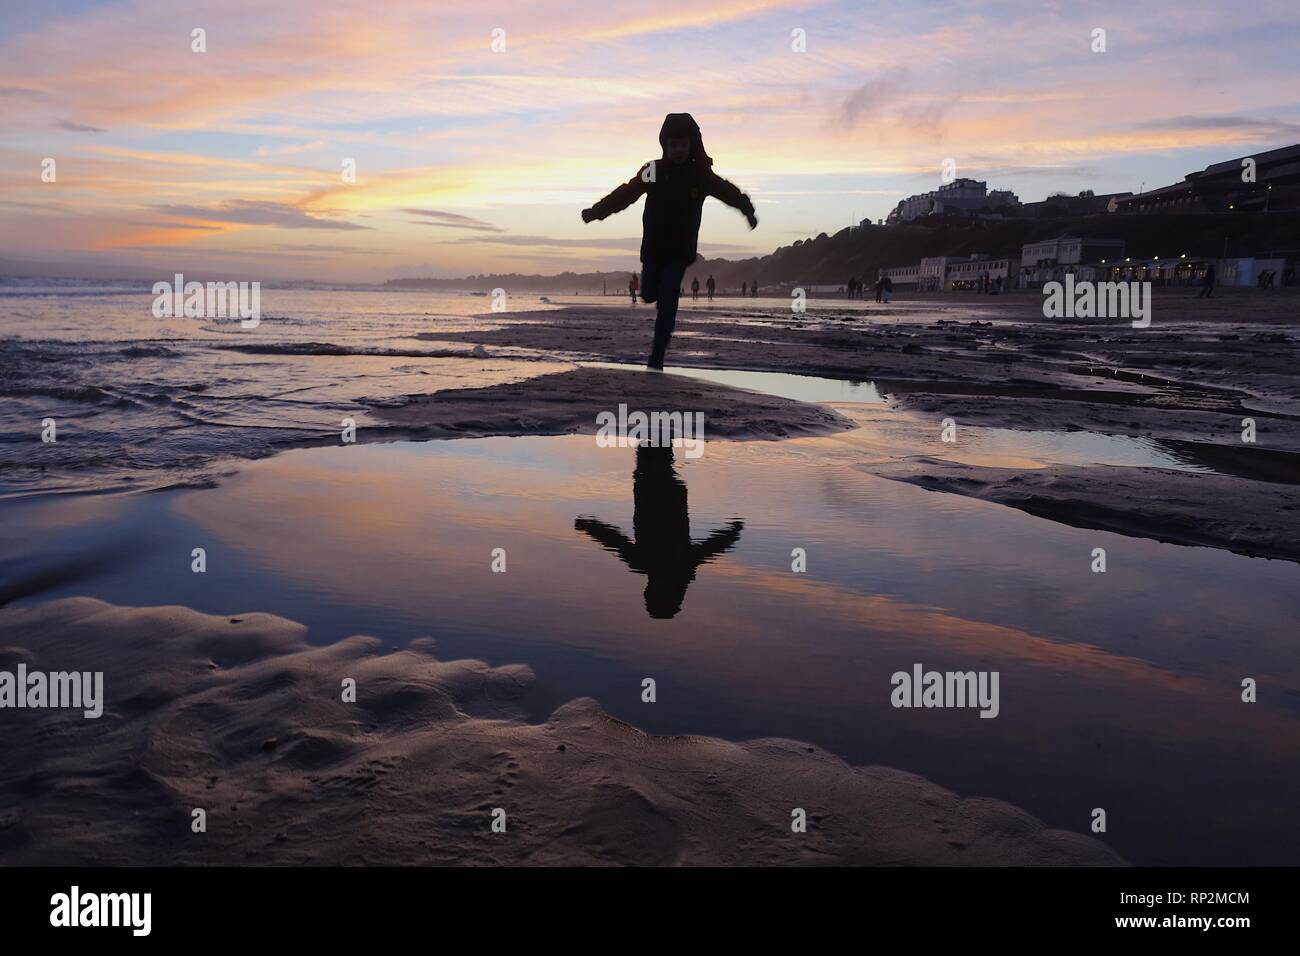 Bournemouth, UK. 20th Feb, 2019: UK Weather - Bright orange sunset at the beach at Bournemouth. Matthew Ashmore/Alamy Live News Stock Photo